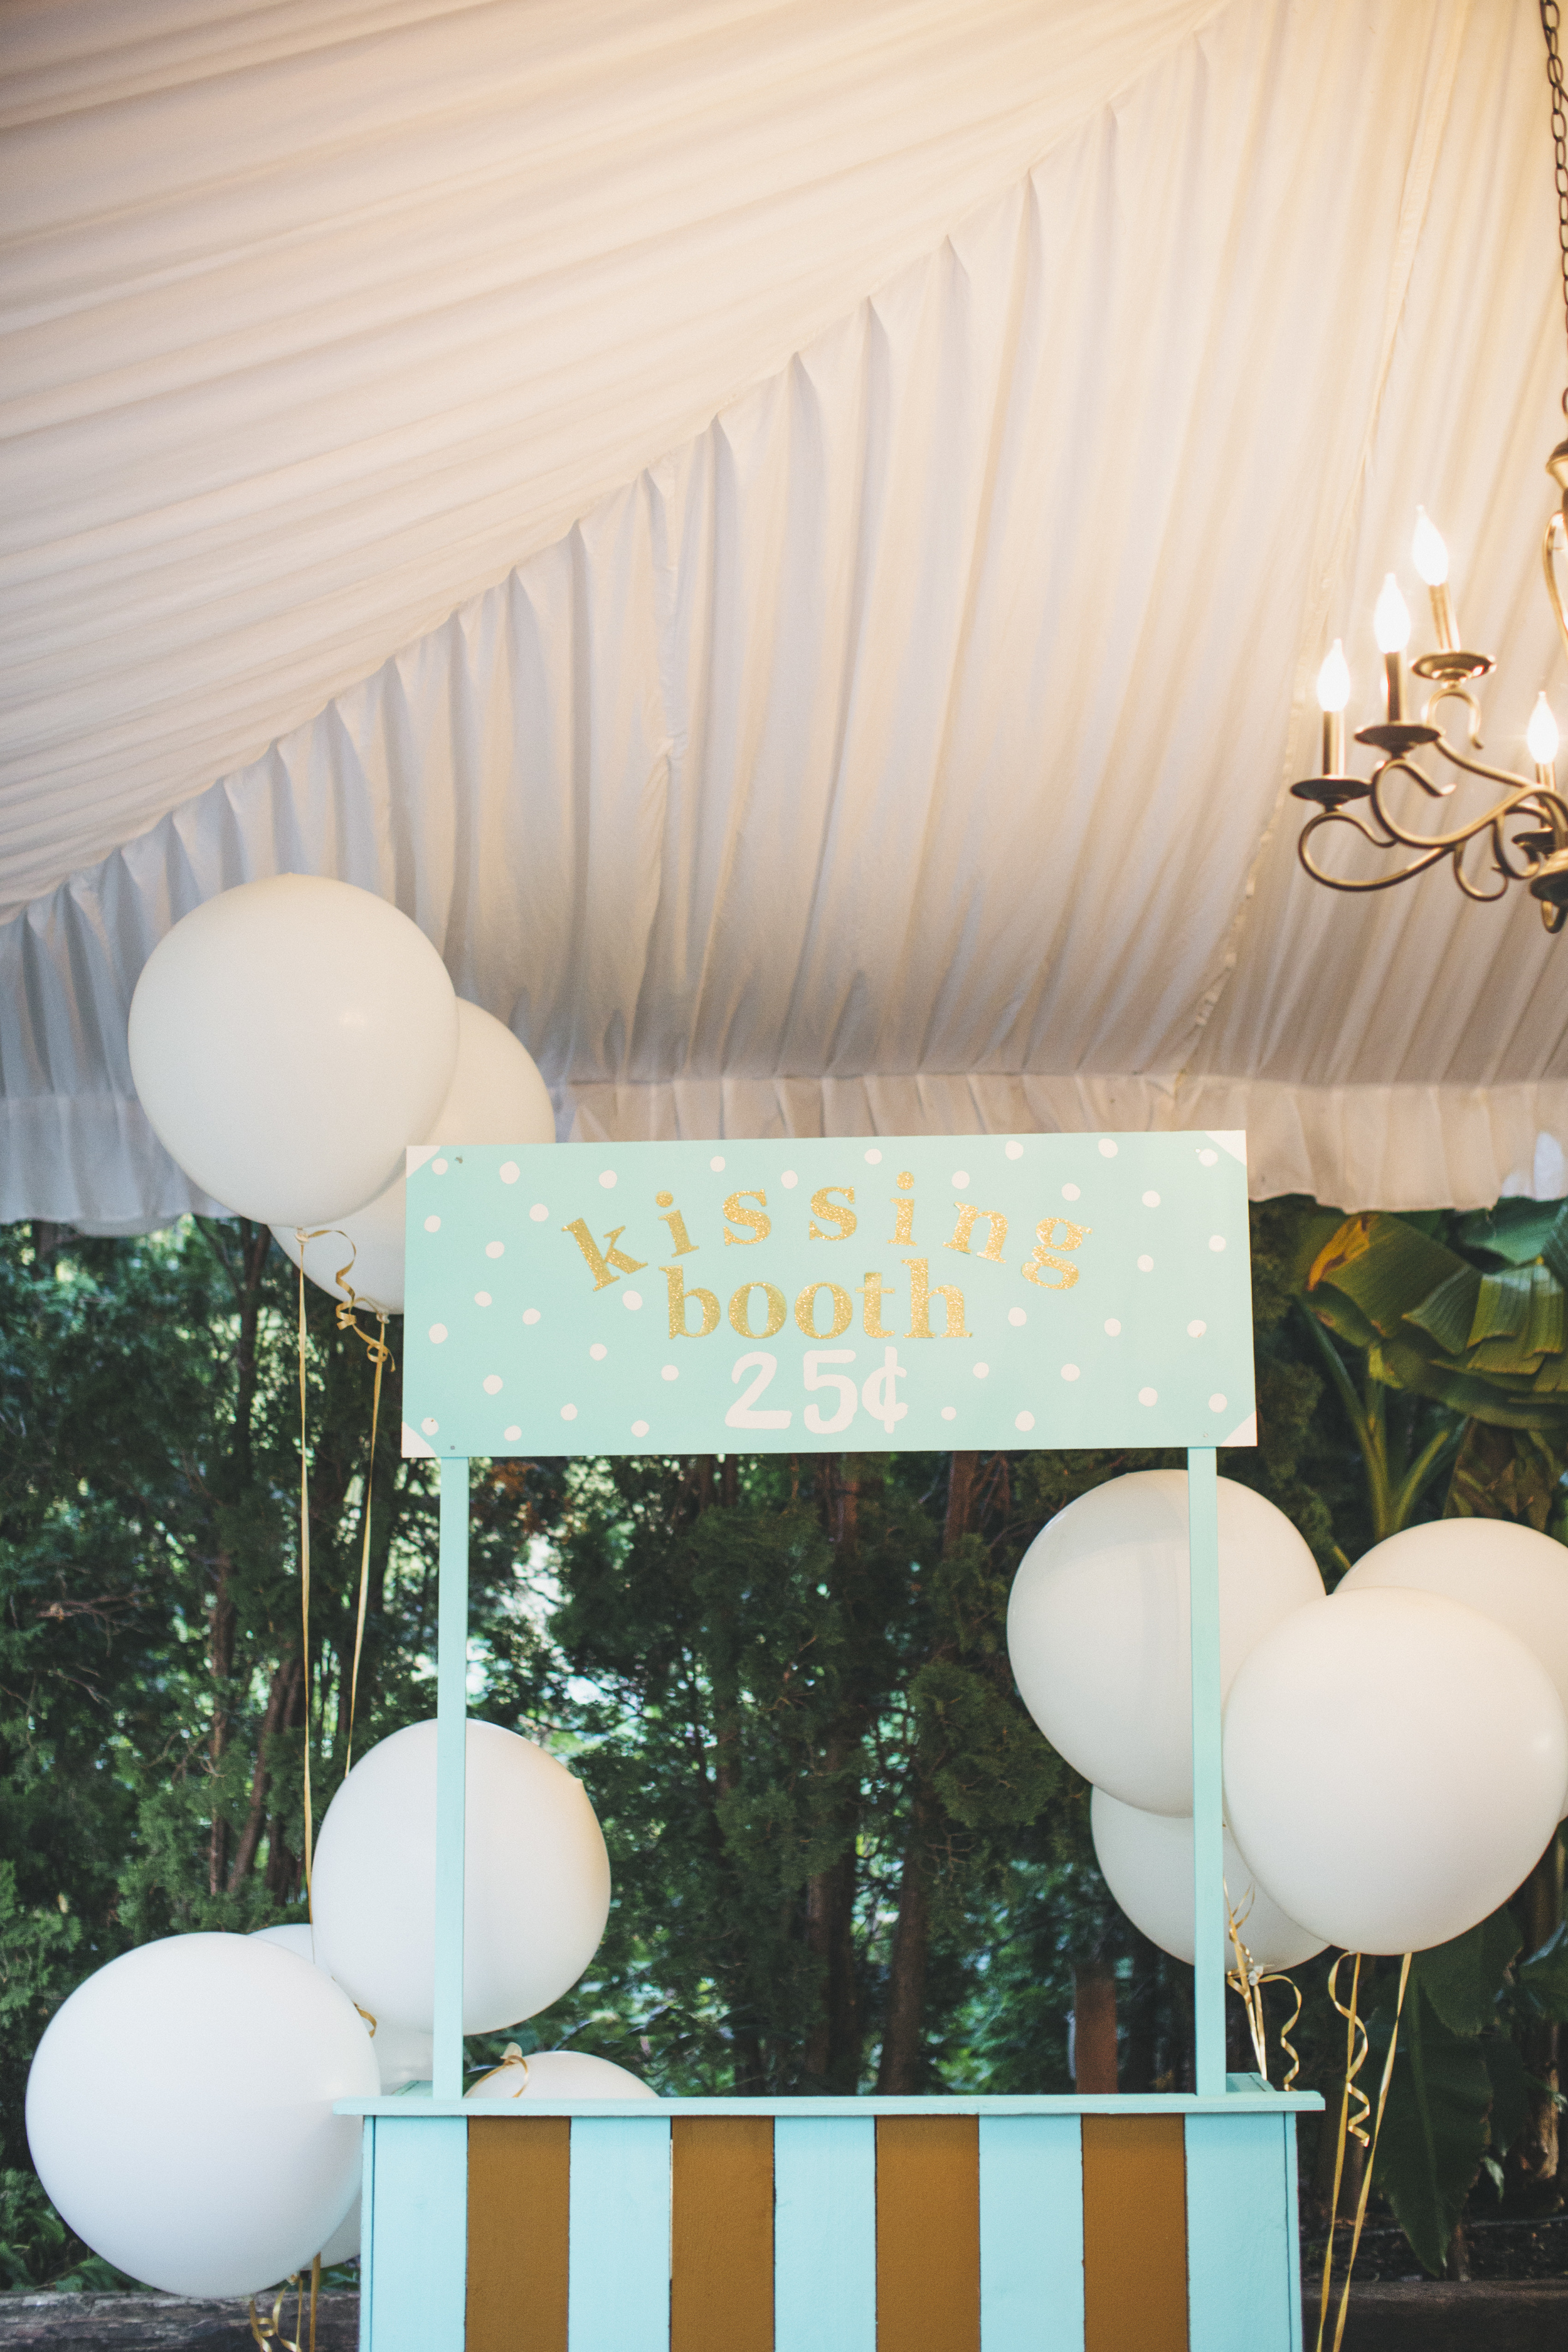 Teal Wedding Kissing Booth with Balloons